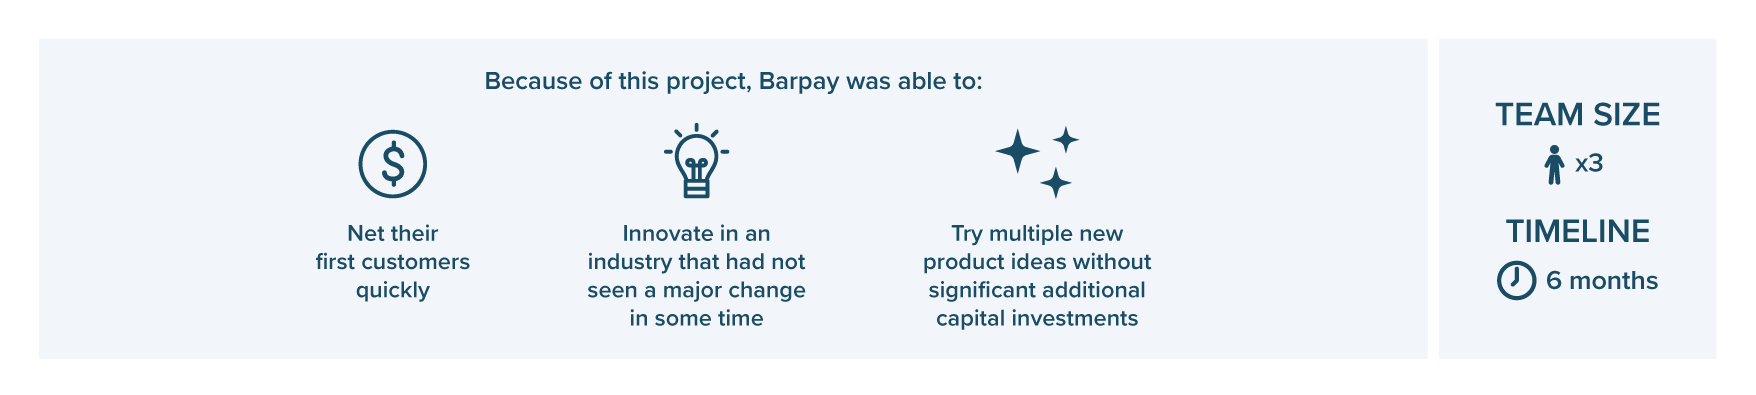 BarPay-Case-Study-Results